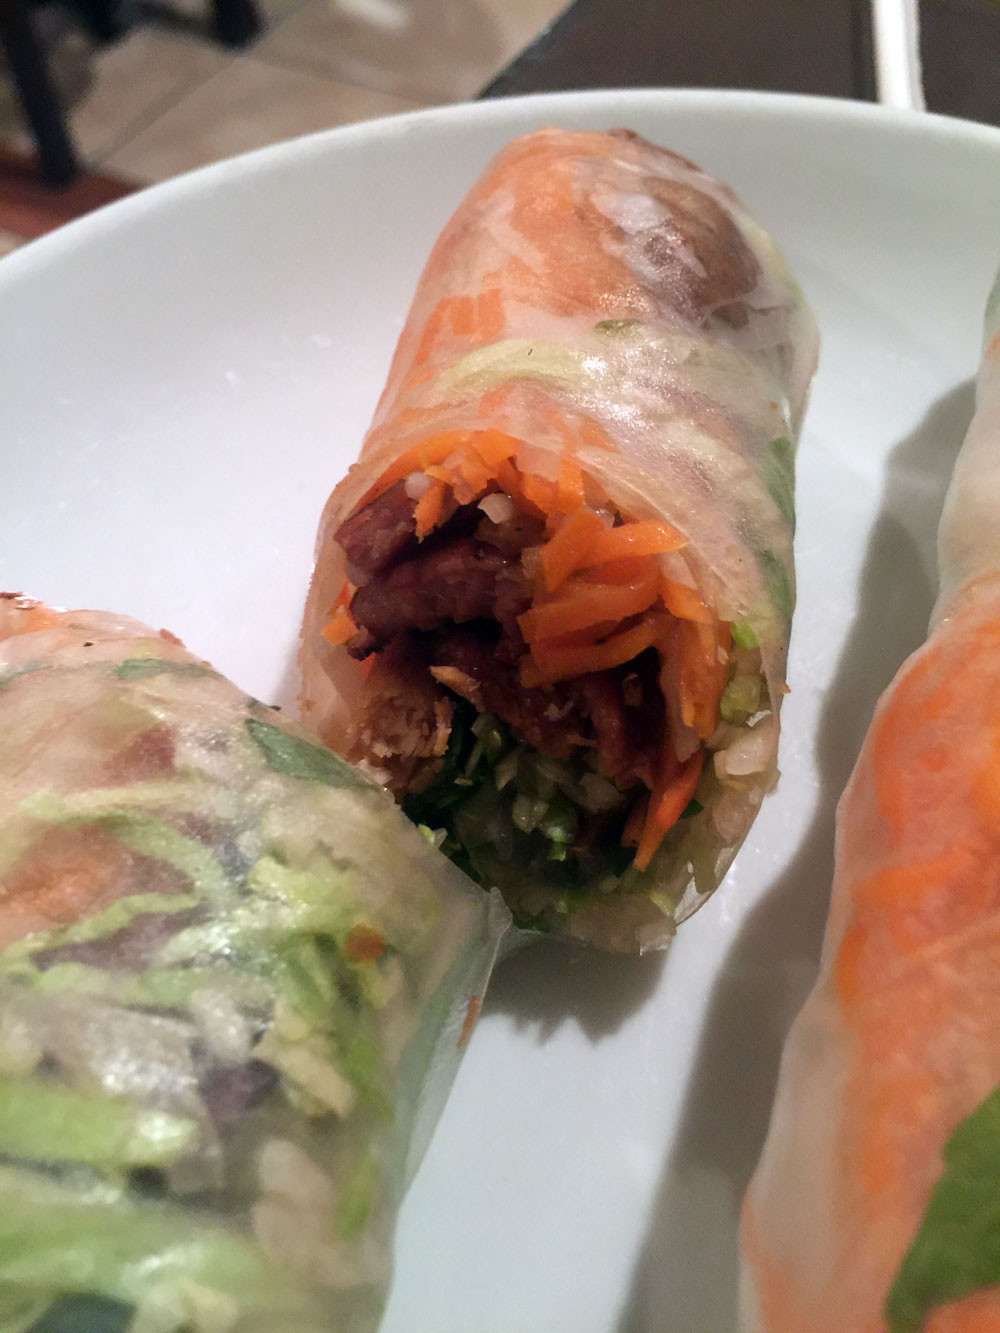 My Favorite Rolls Are The Thit Nuong Cuon Bbq Pork Rolls These Delicious Smokey Pork Rolls Are I Believe The Best I Ve Ever Had